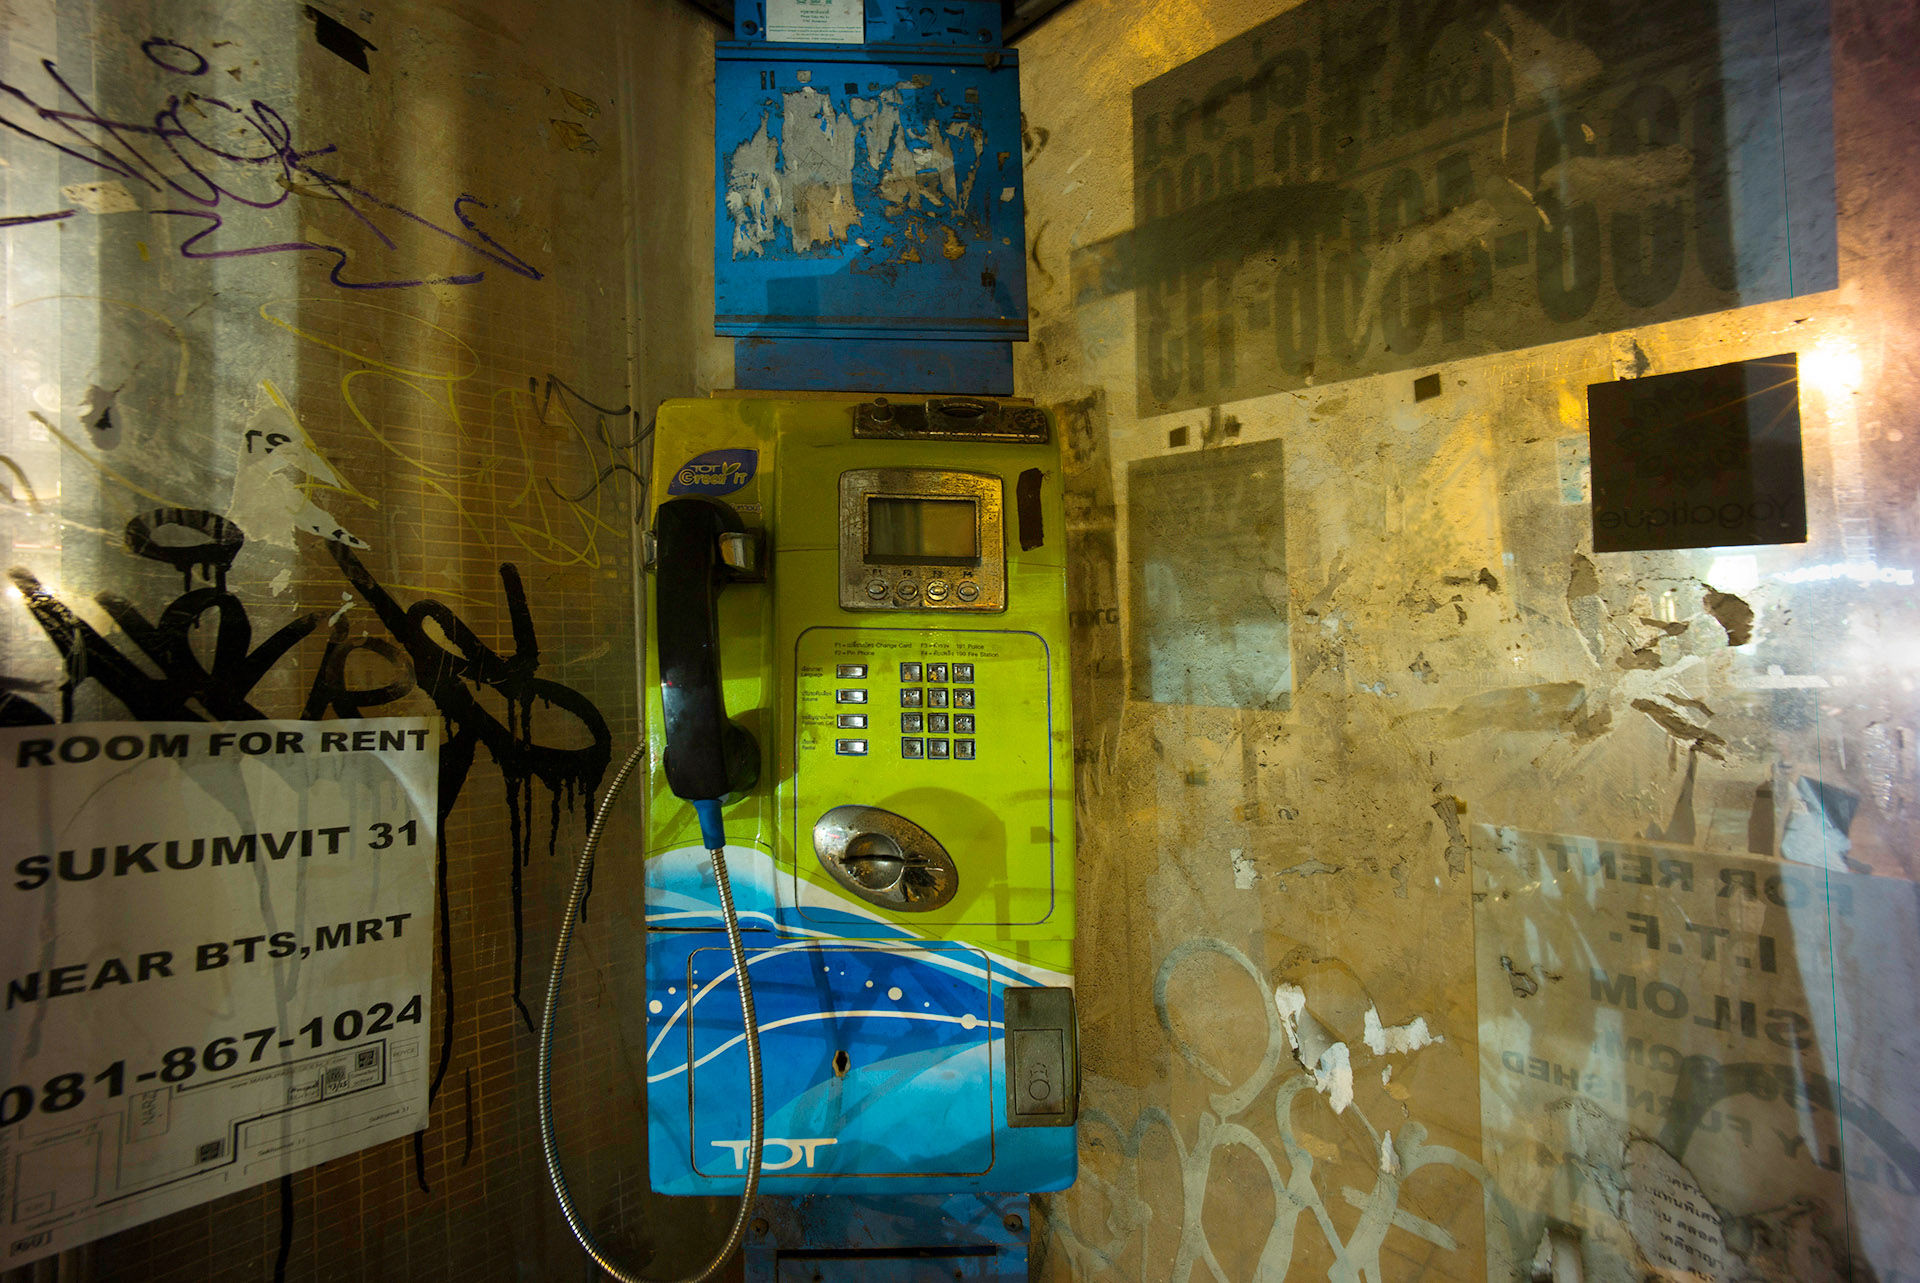 Pay phone booth interior